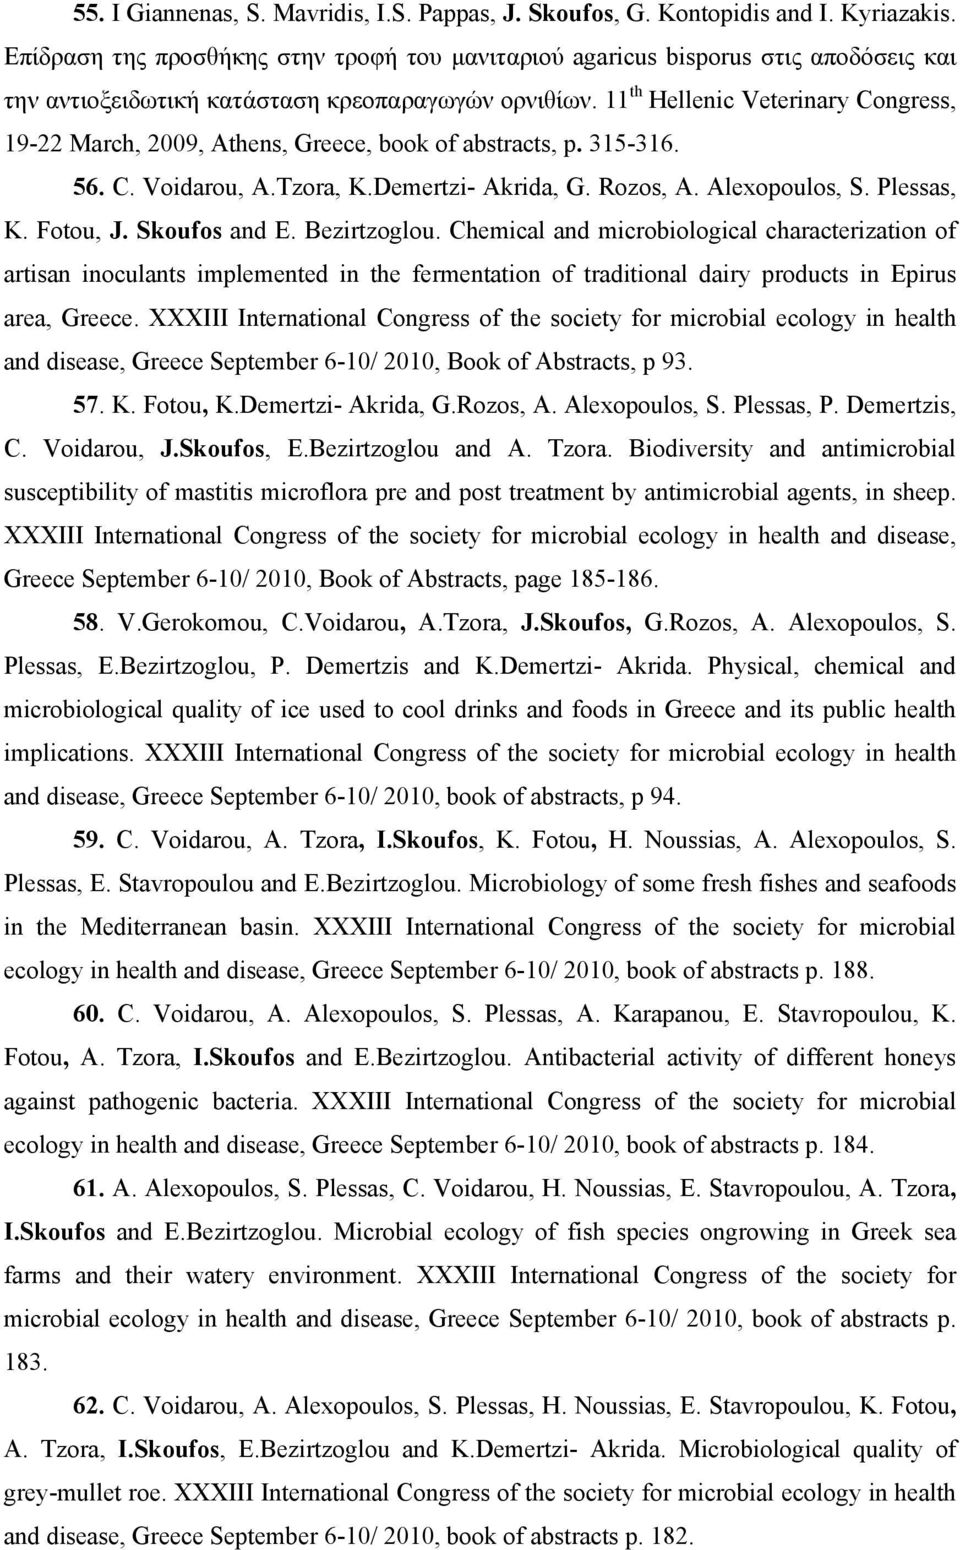 11 th Hellenic Veterinary Congress, 19-22 Μarch, 2009, Athens, Greece, book of abstracts, p. 315-316. 56. C. Voidarou, A.Tzora, K.Demertzi- Akrida, G. Rozos, A. Alexopoulos, S. Plessas, K. Fotou, J.